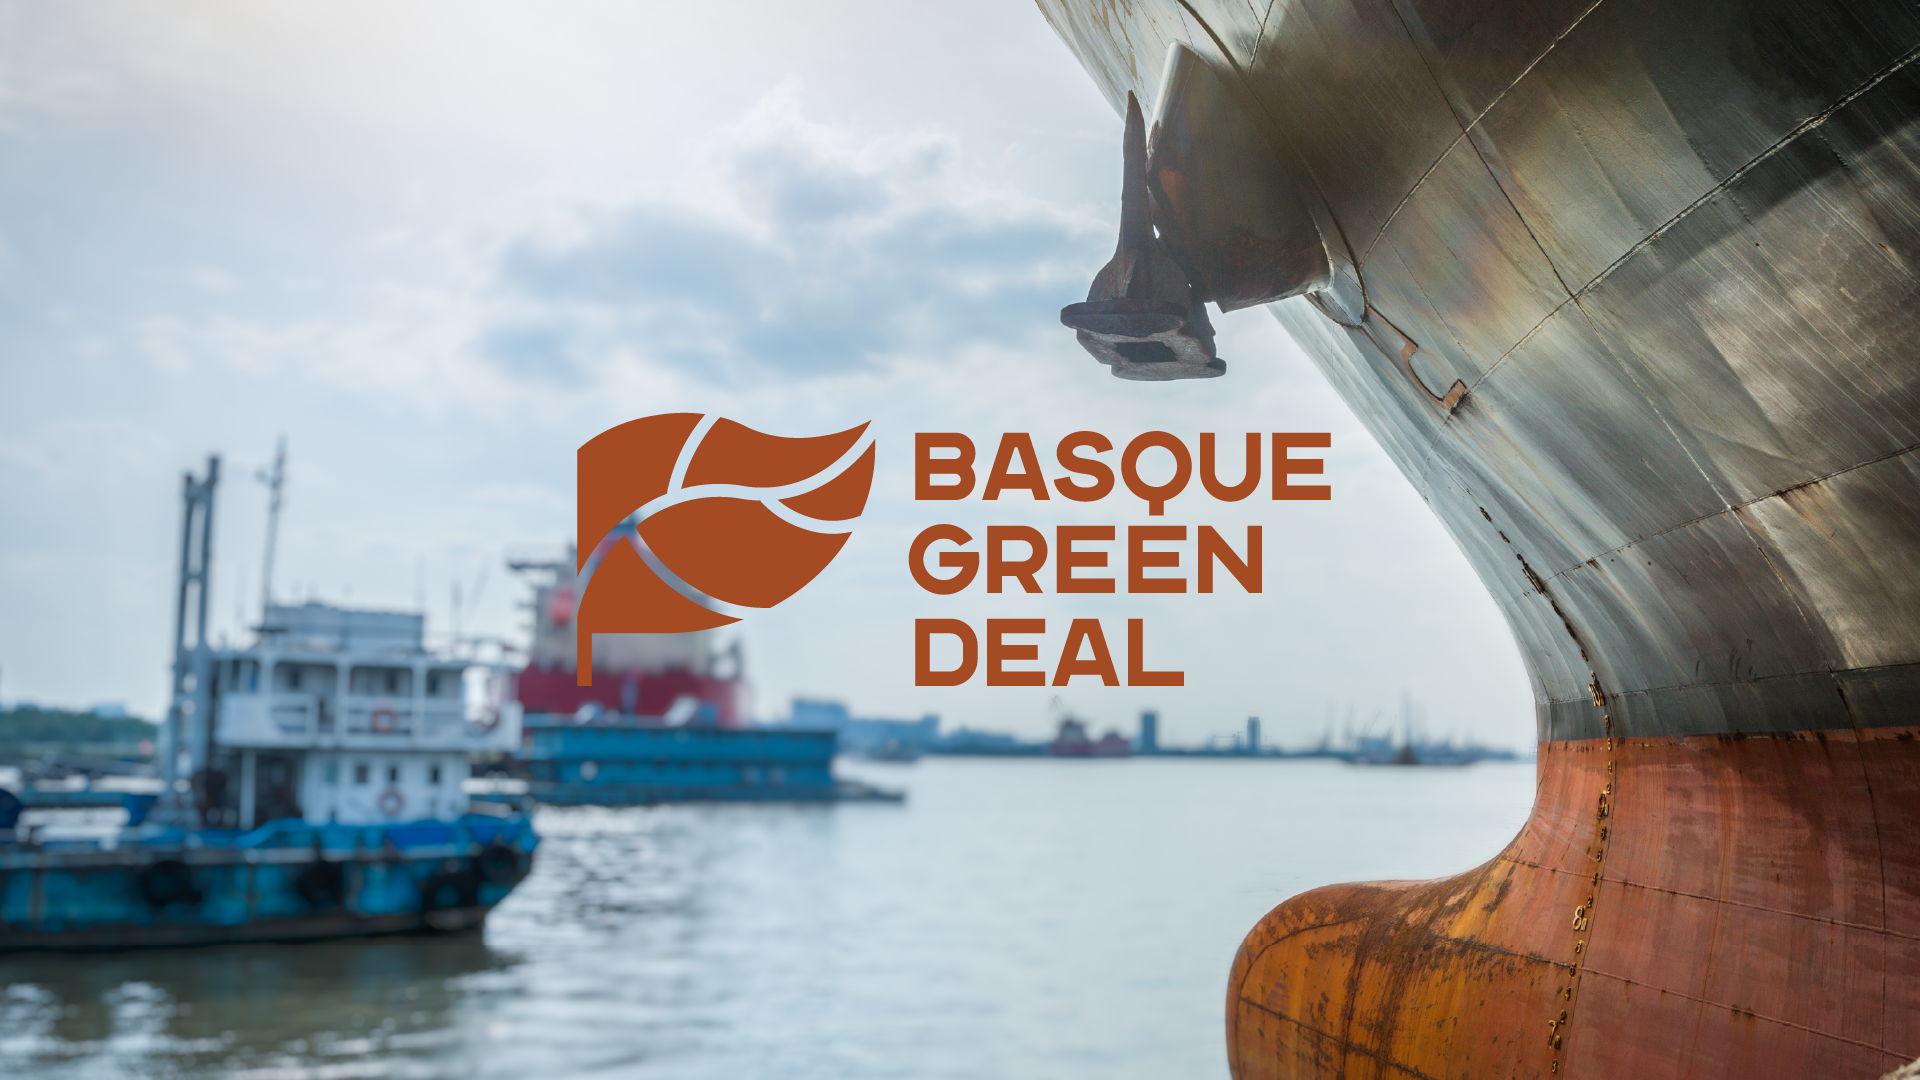 Basque_Green_Deal_13R.png